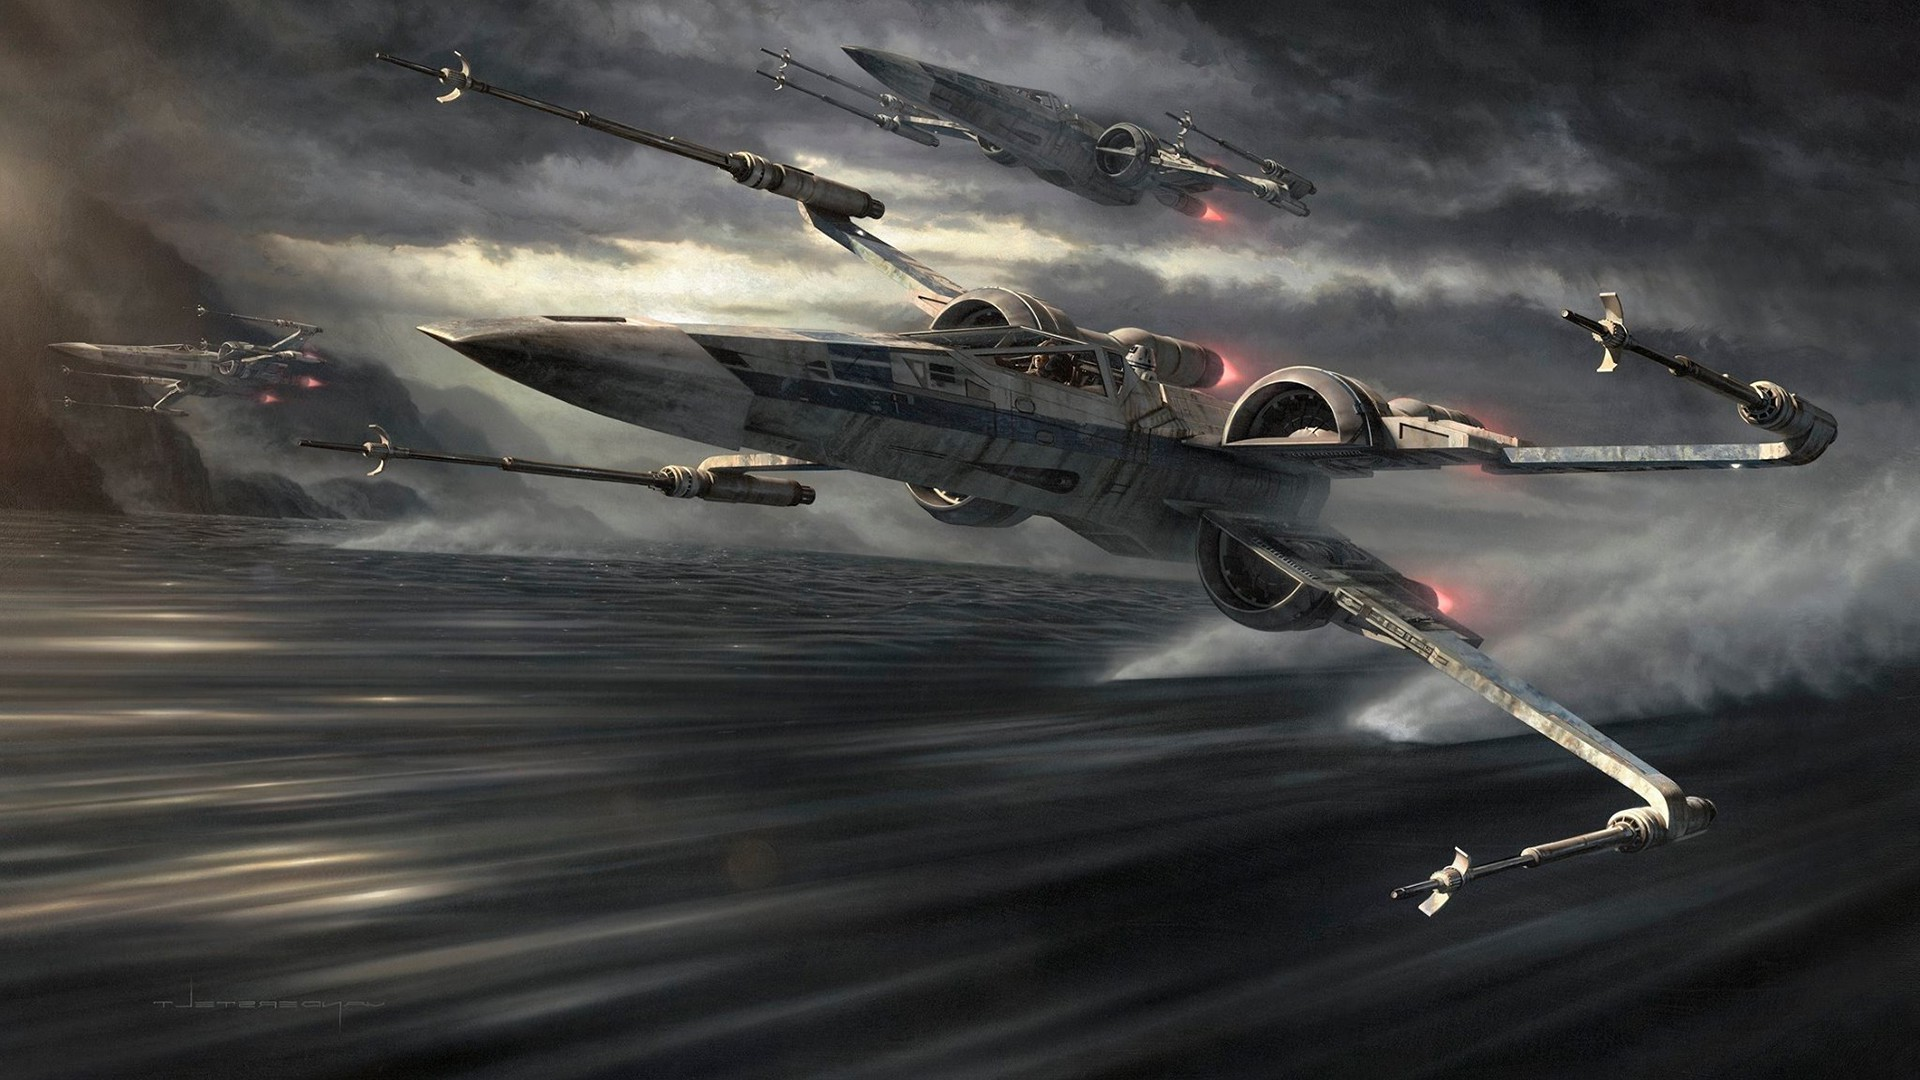 Download hd wallpapers of 301401-X-wing, Star Wars. Free download High